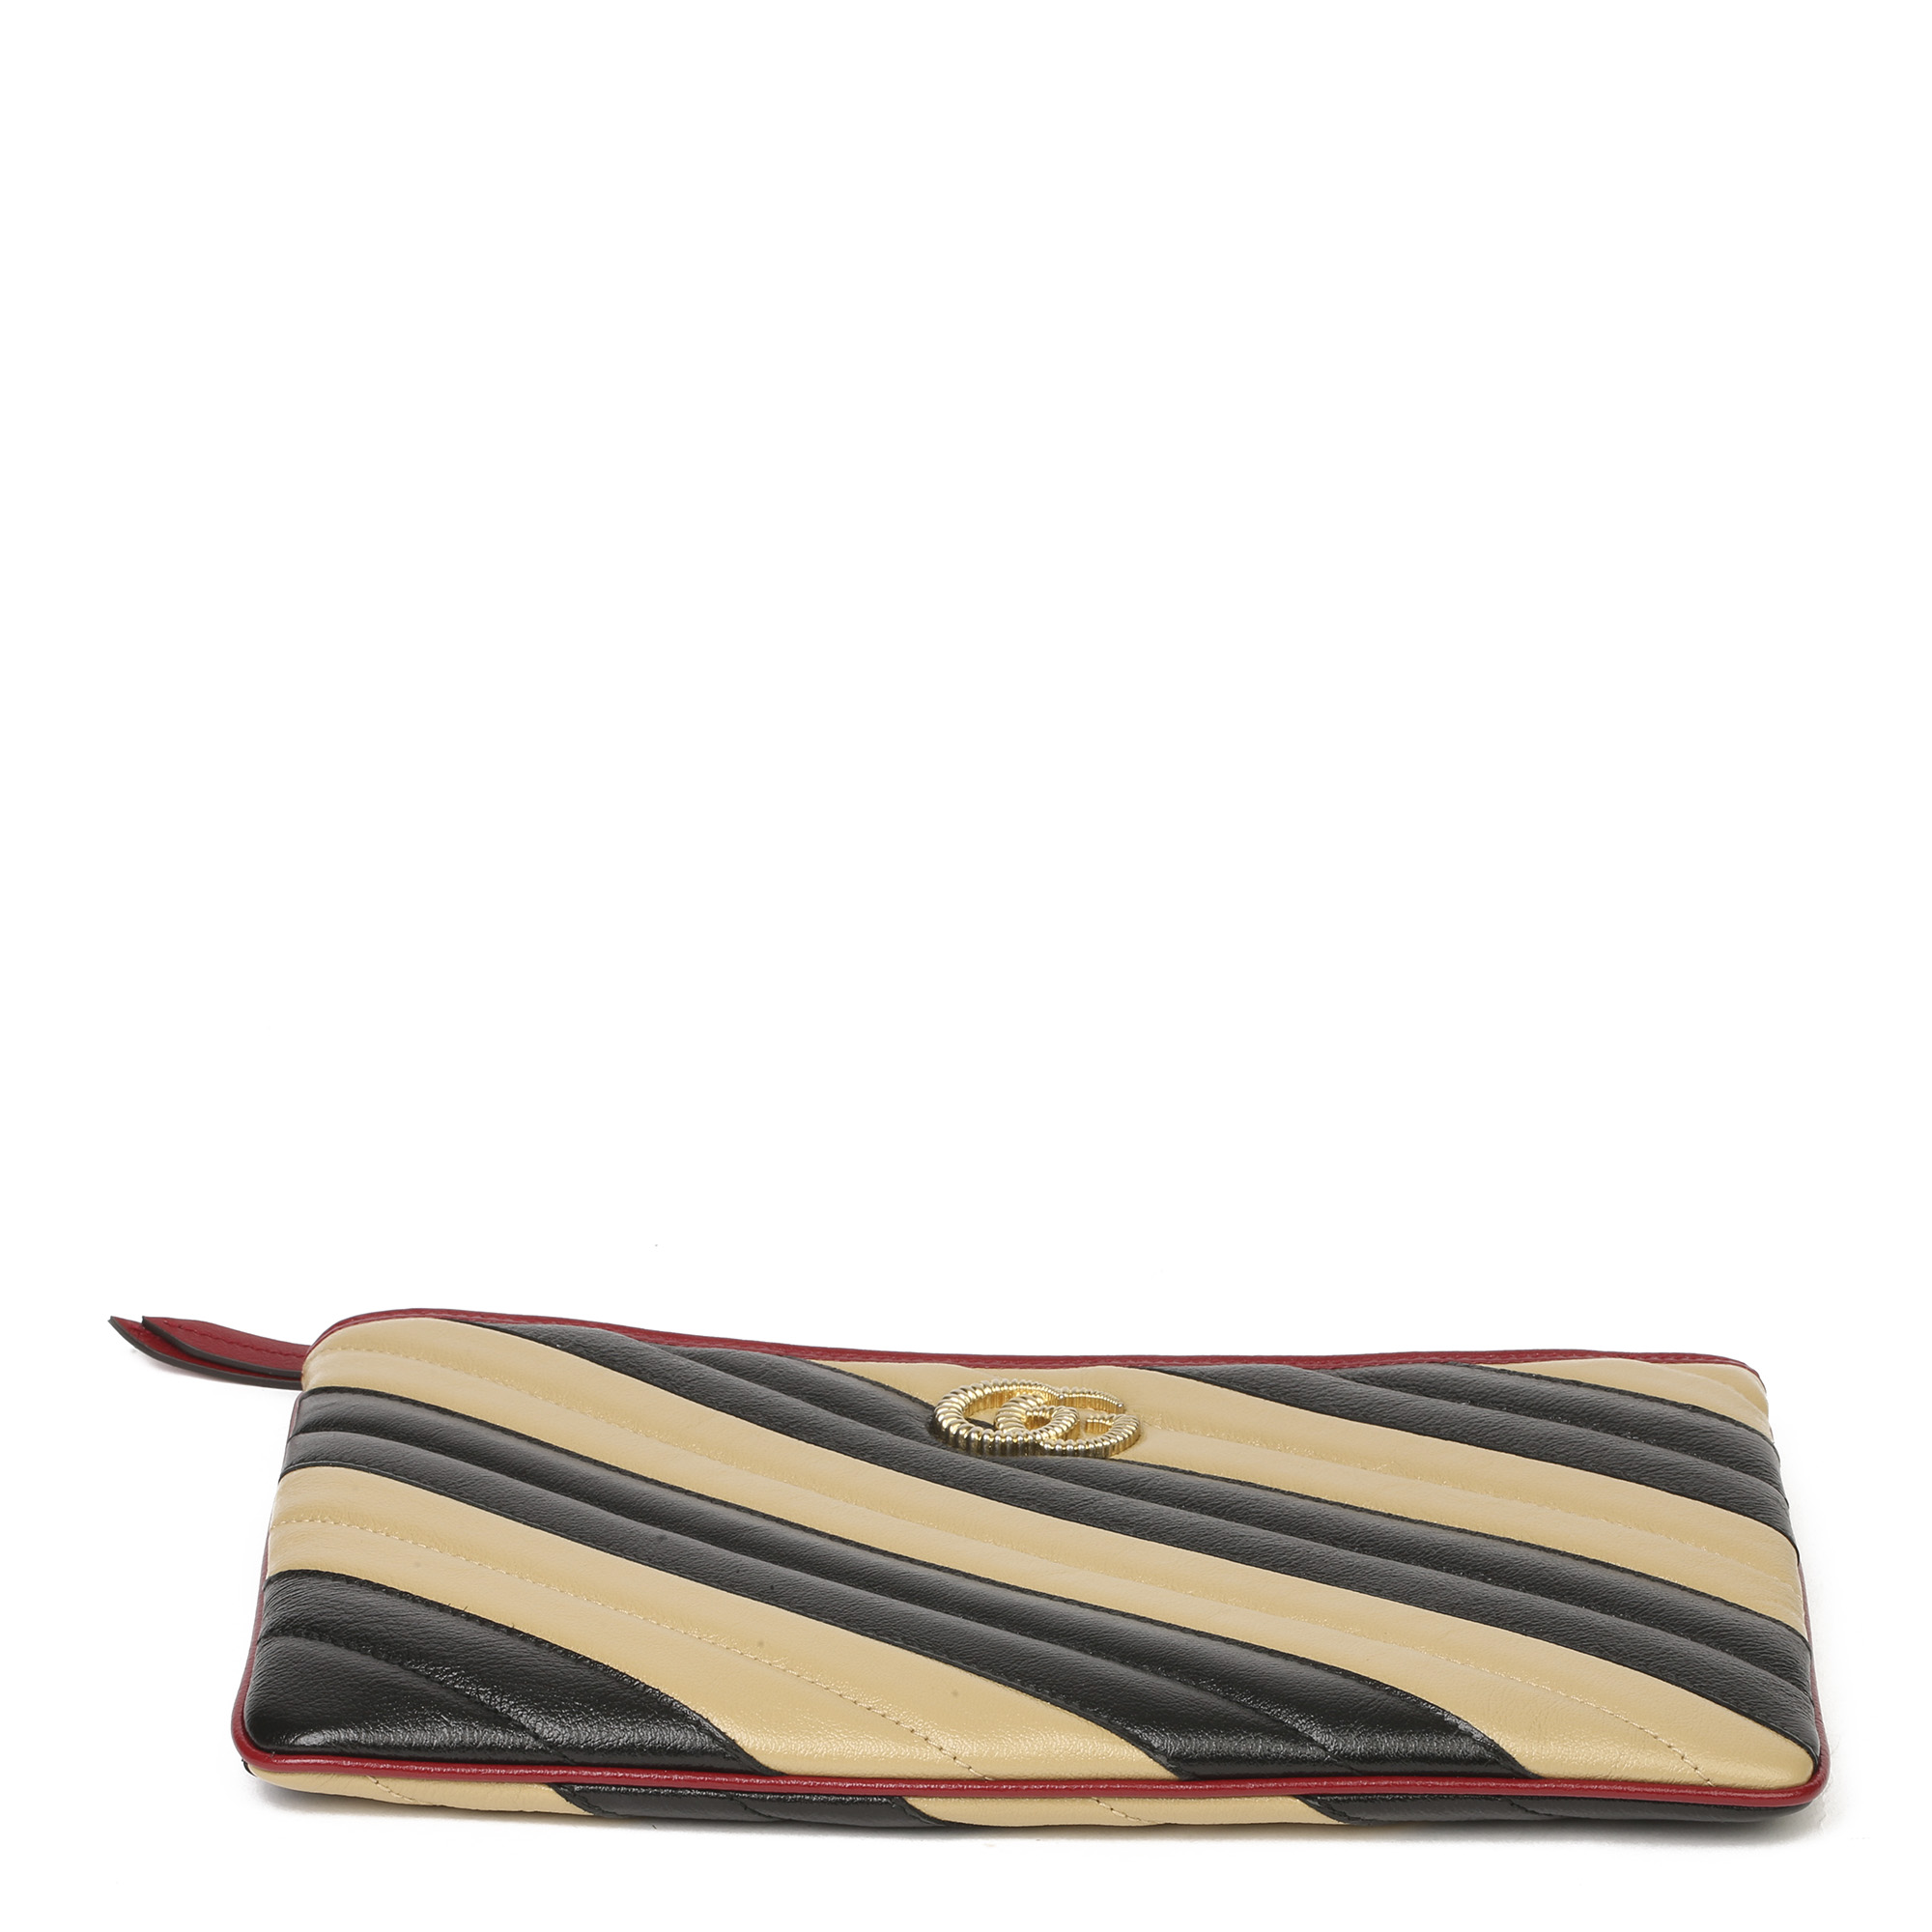 Gucci Black, Cream & Red Diagonal Quilted Aged Calfskin Leather Marmont Pouch - Image 8 of 11